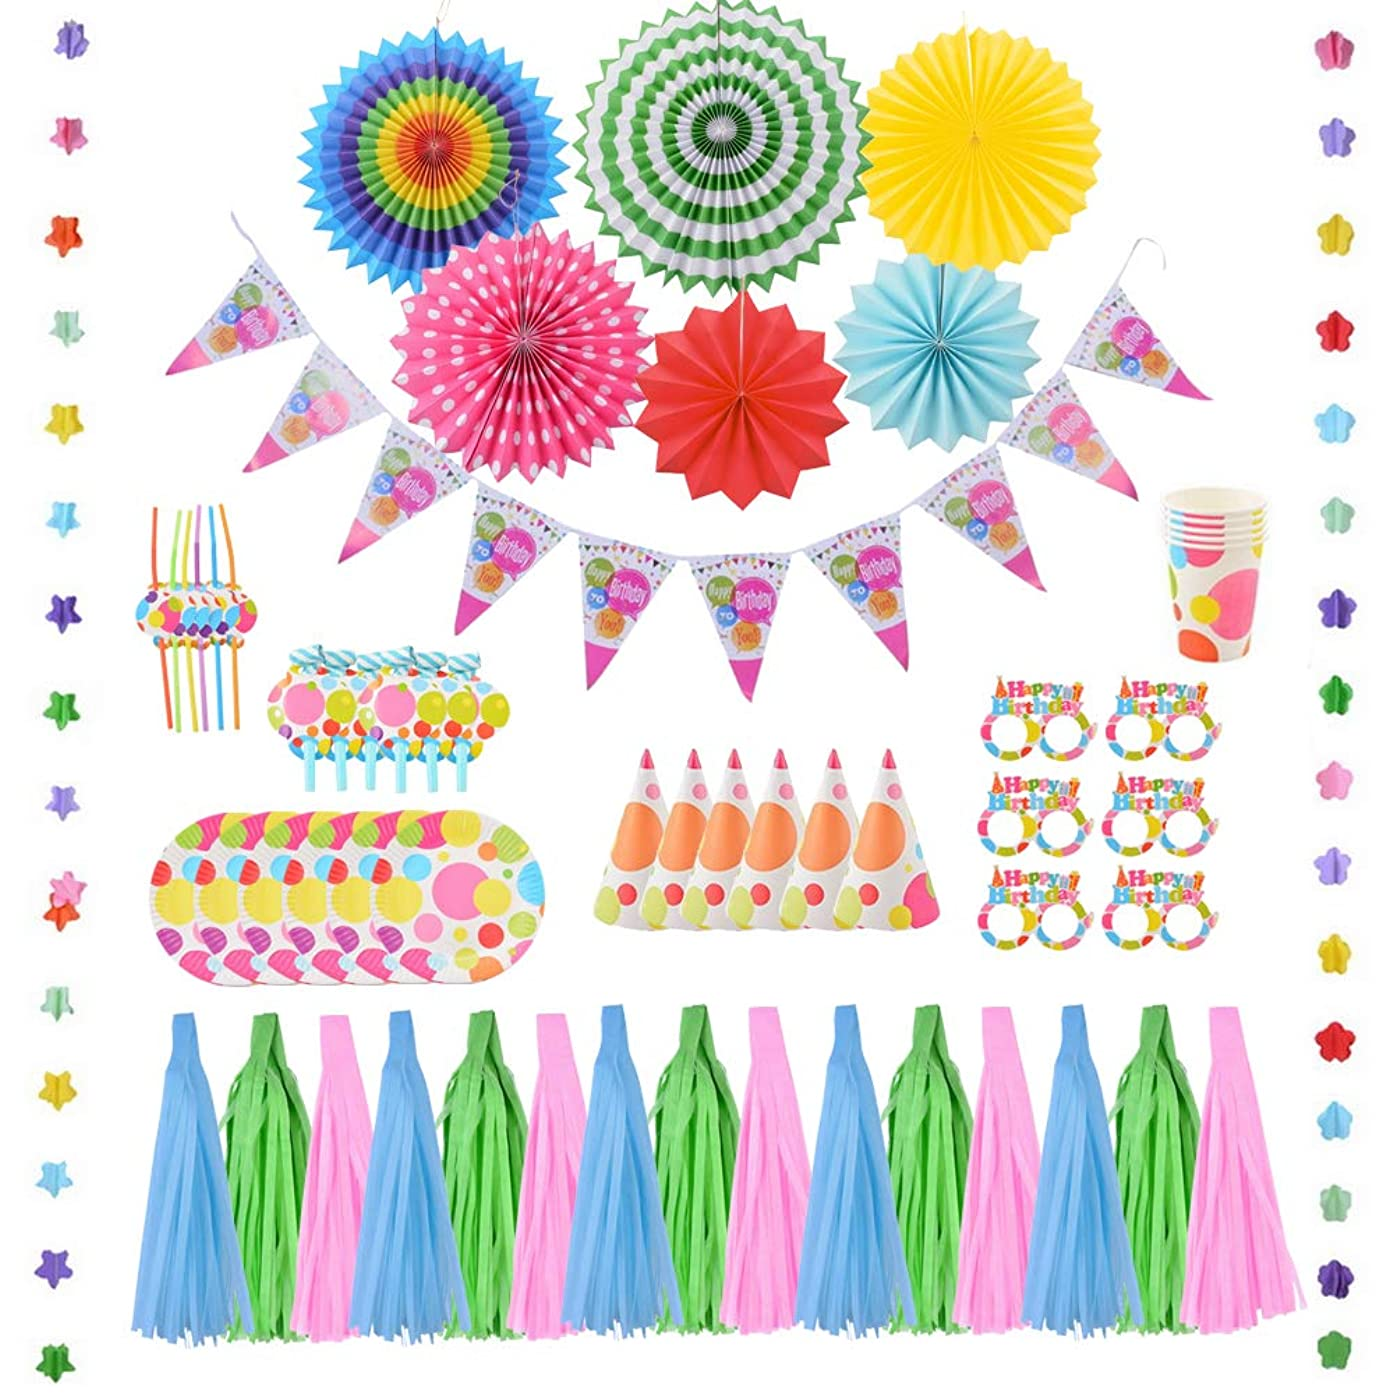 JuneJour Birthday Party Supplies Multicolor Decorations Kit with Blowing Dragons Whistle, Tassel, Hanging Paper Fans, Cake Plates, Birthday Glasses, Cup and Straw (60 Pack)